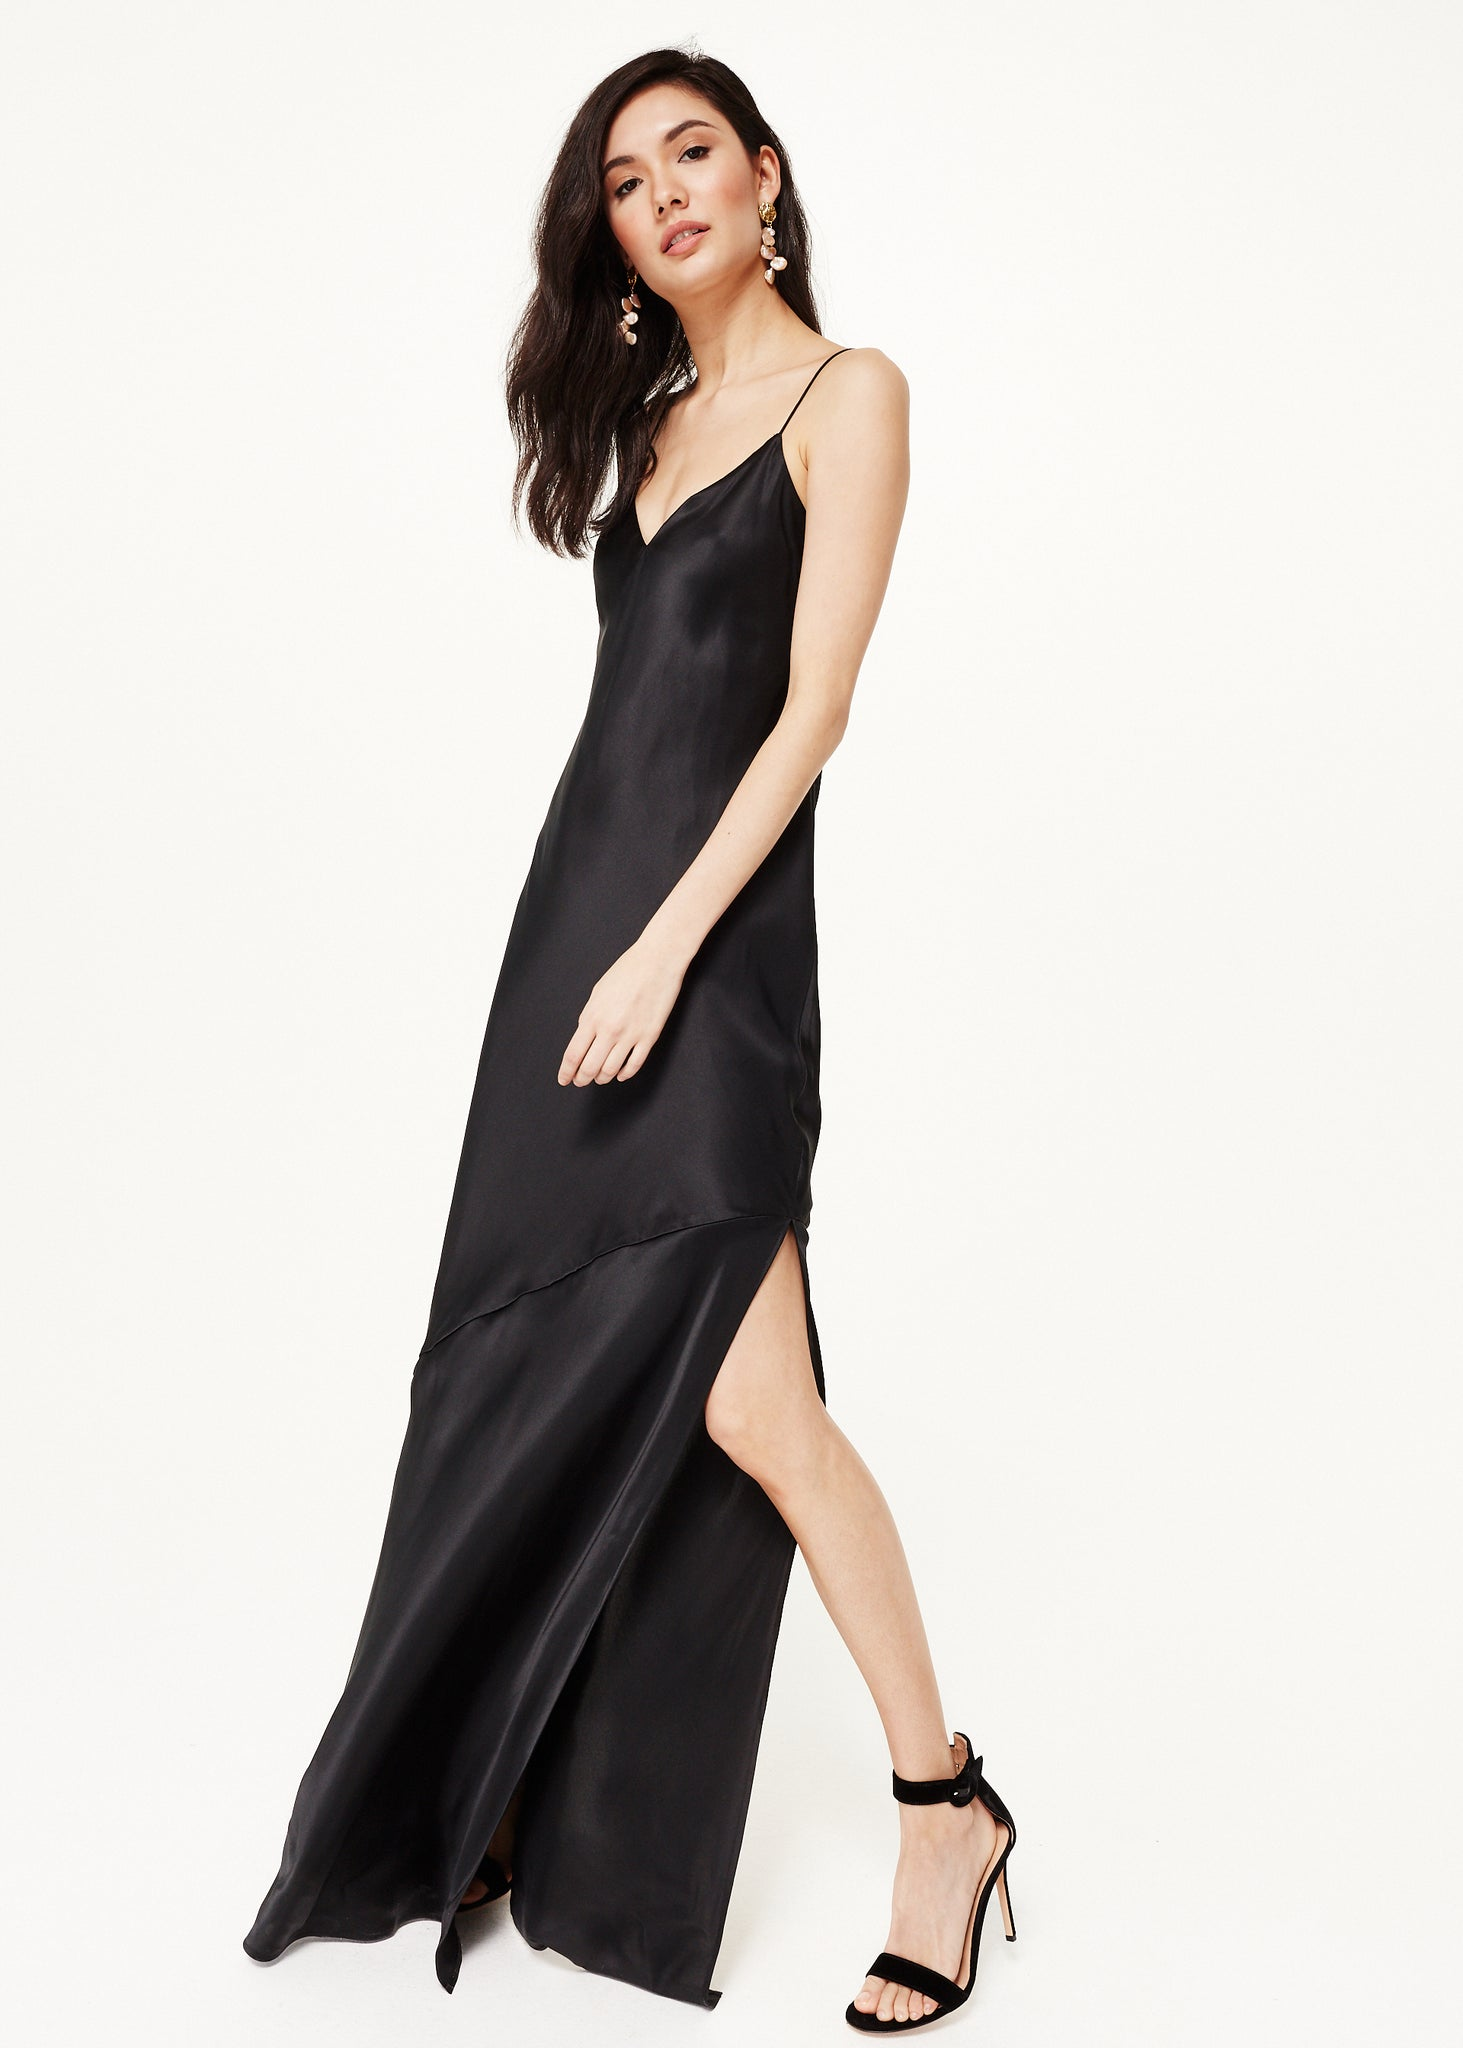 Image of Raven Gown Black